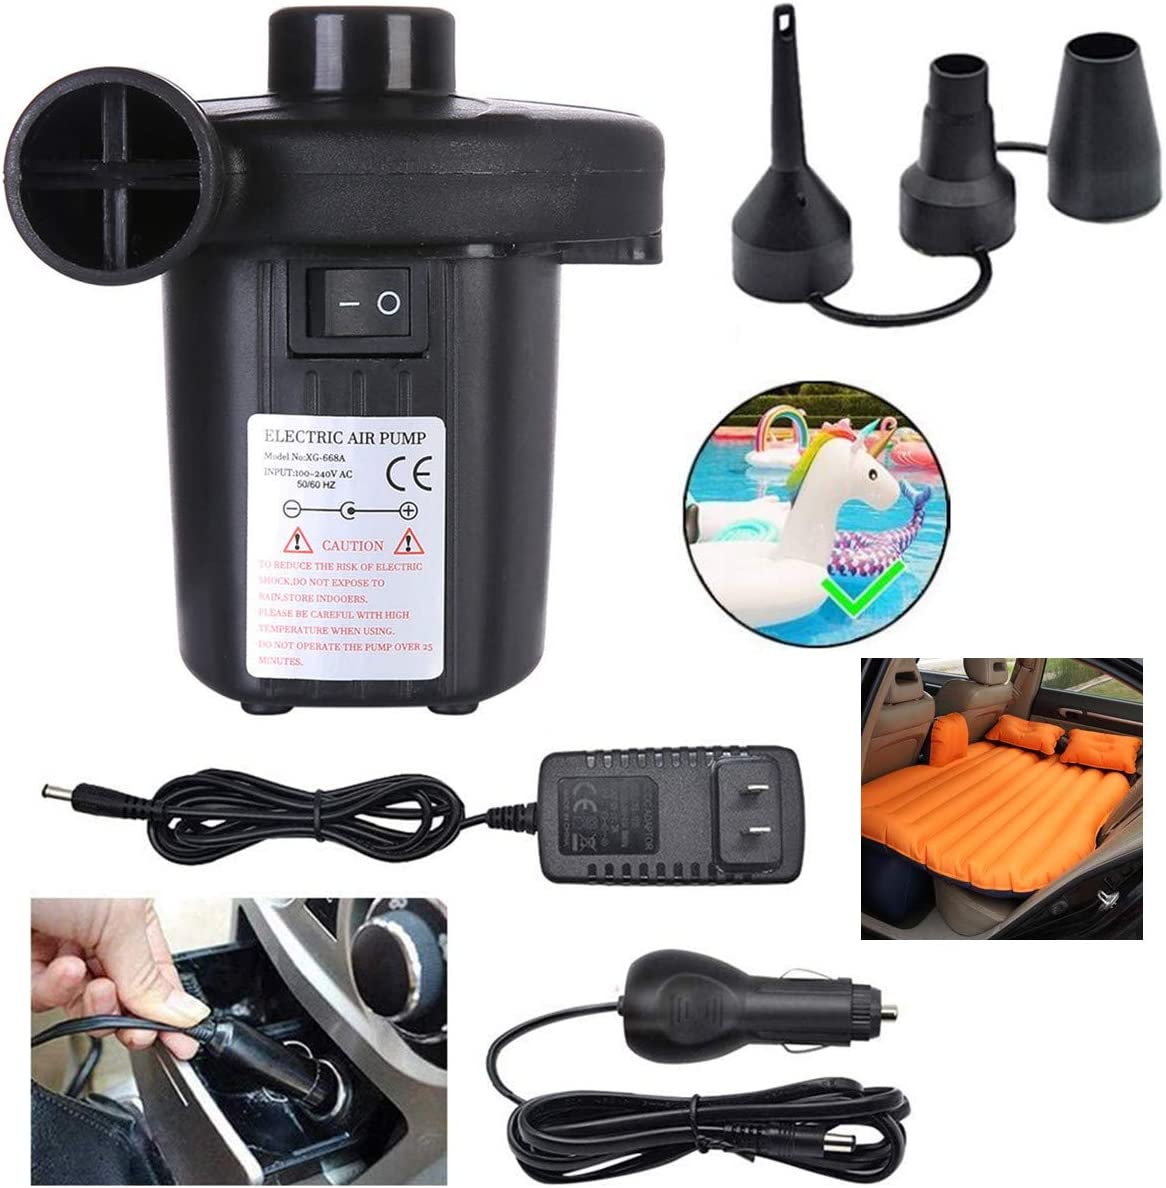 Utaomld Air Pump, Electric Quick Air Pump for Inflatables Air Mattress Pump with 3 Nozzles Inflator Deflator for Air Beds Swimming Ring Inflatable Pool Toys, Portable, Black